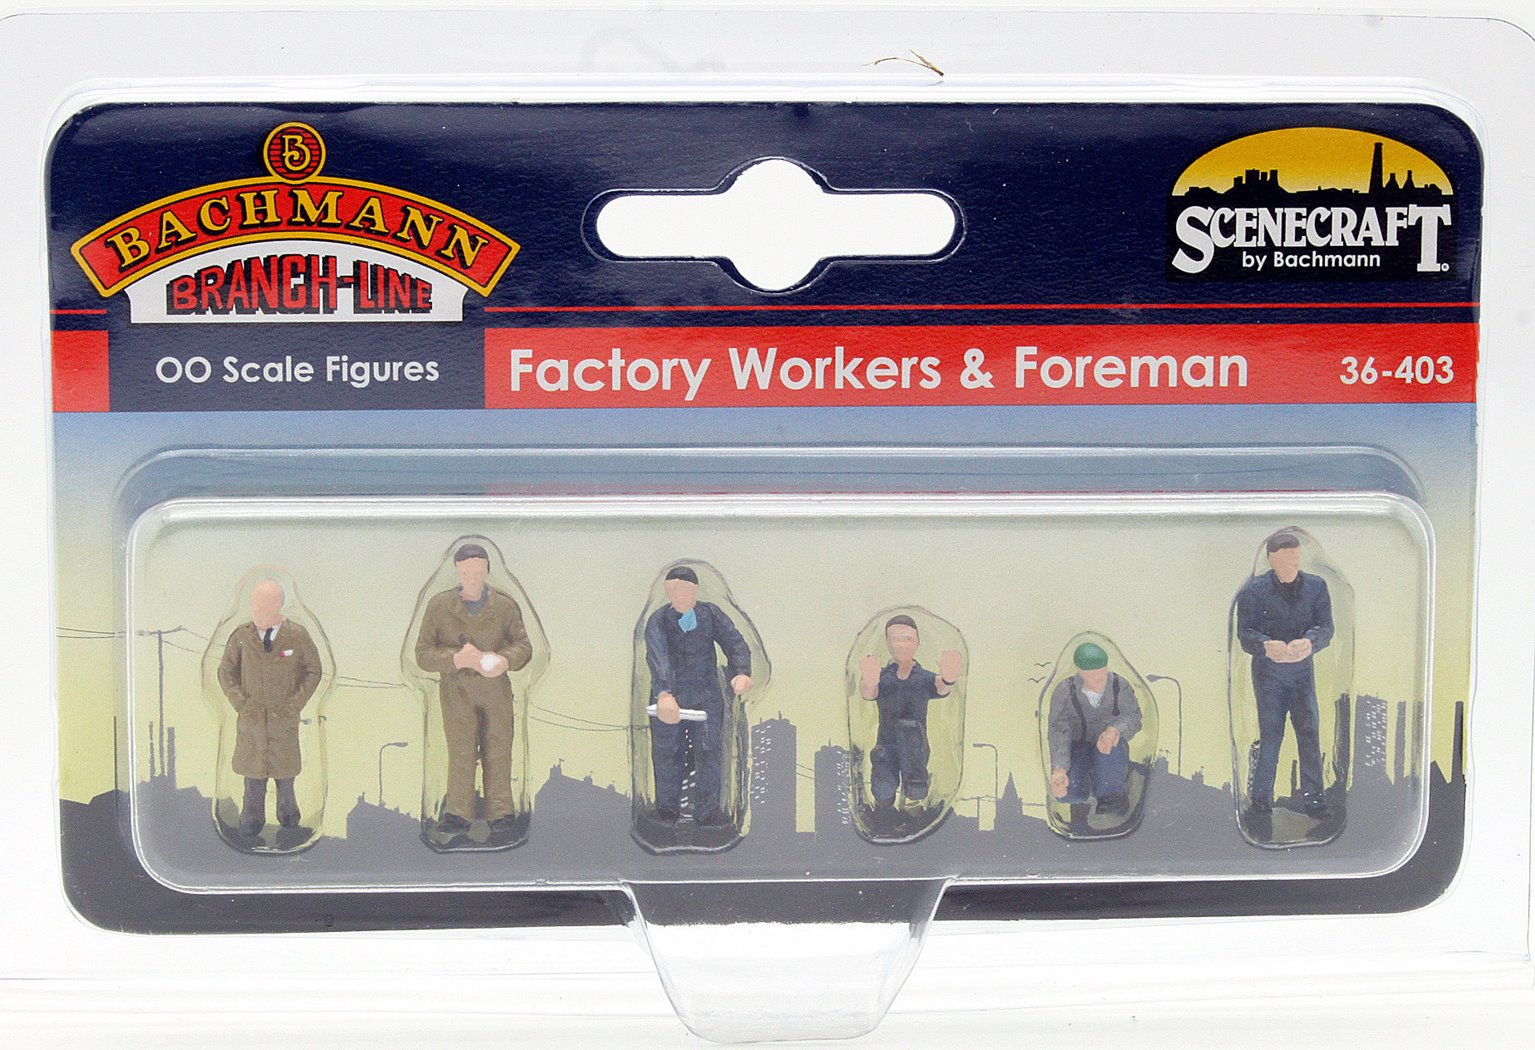 Factory Workers & Foreman